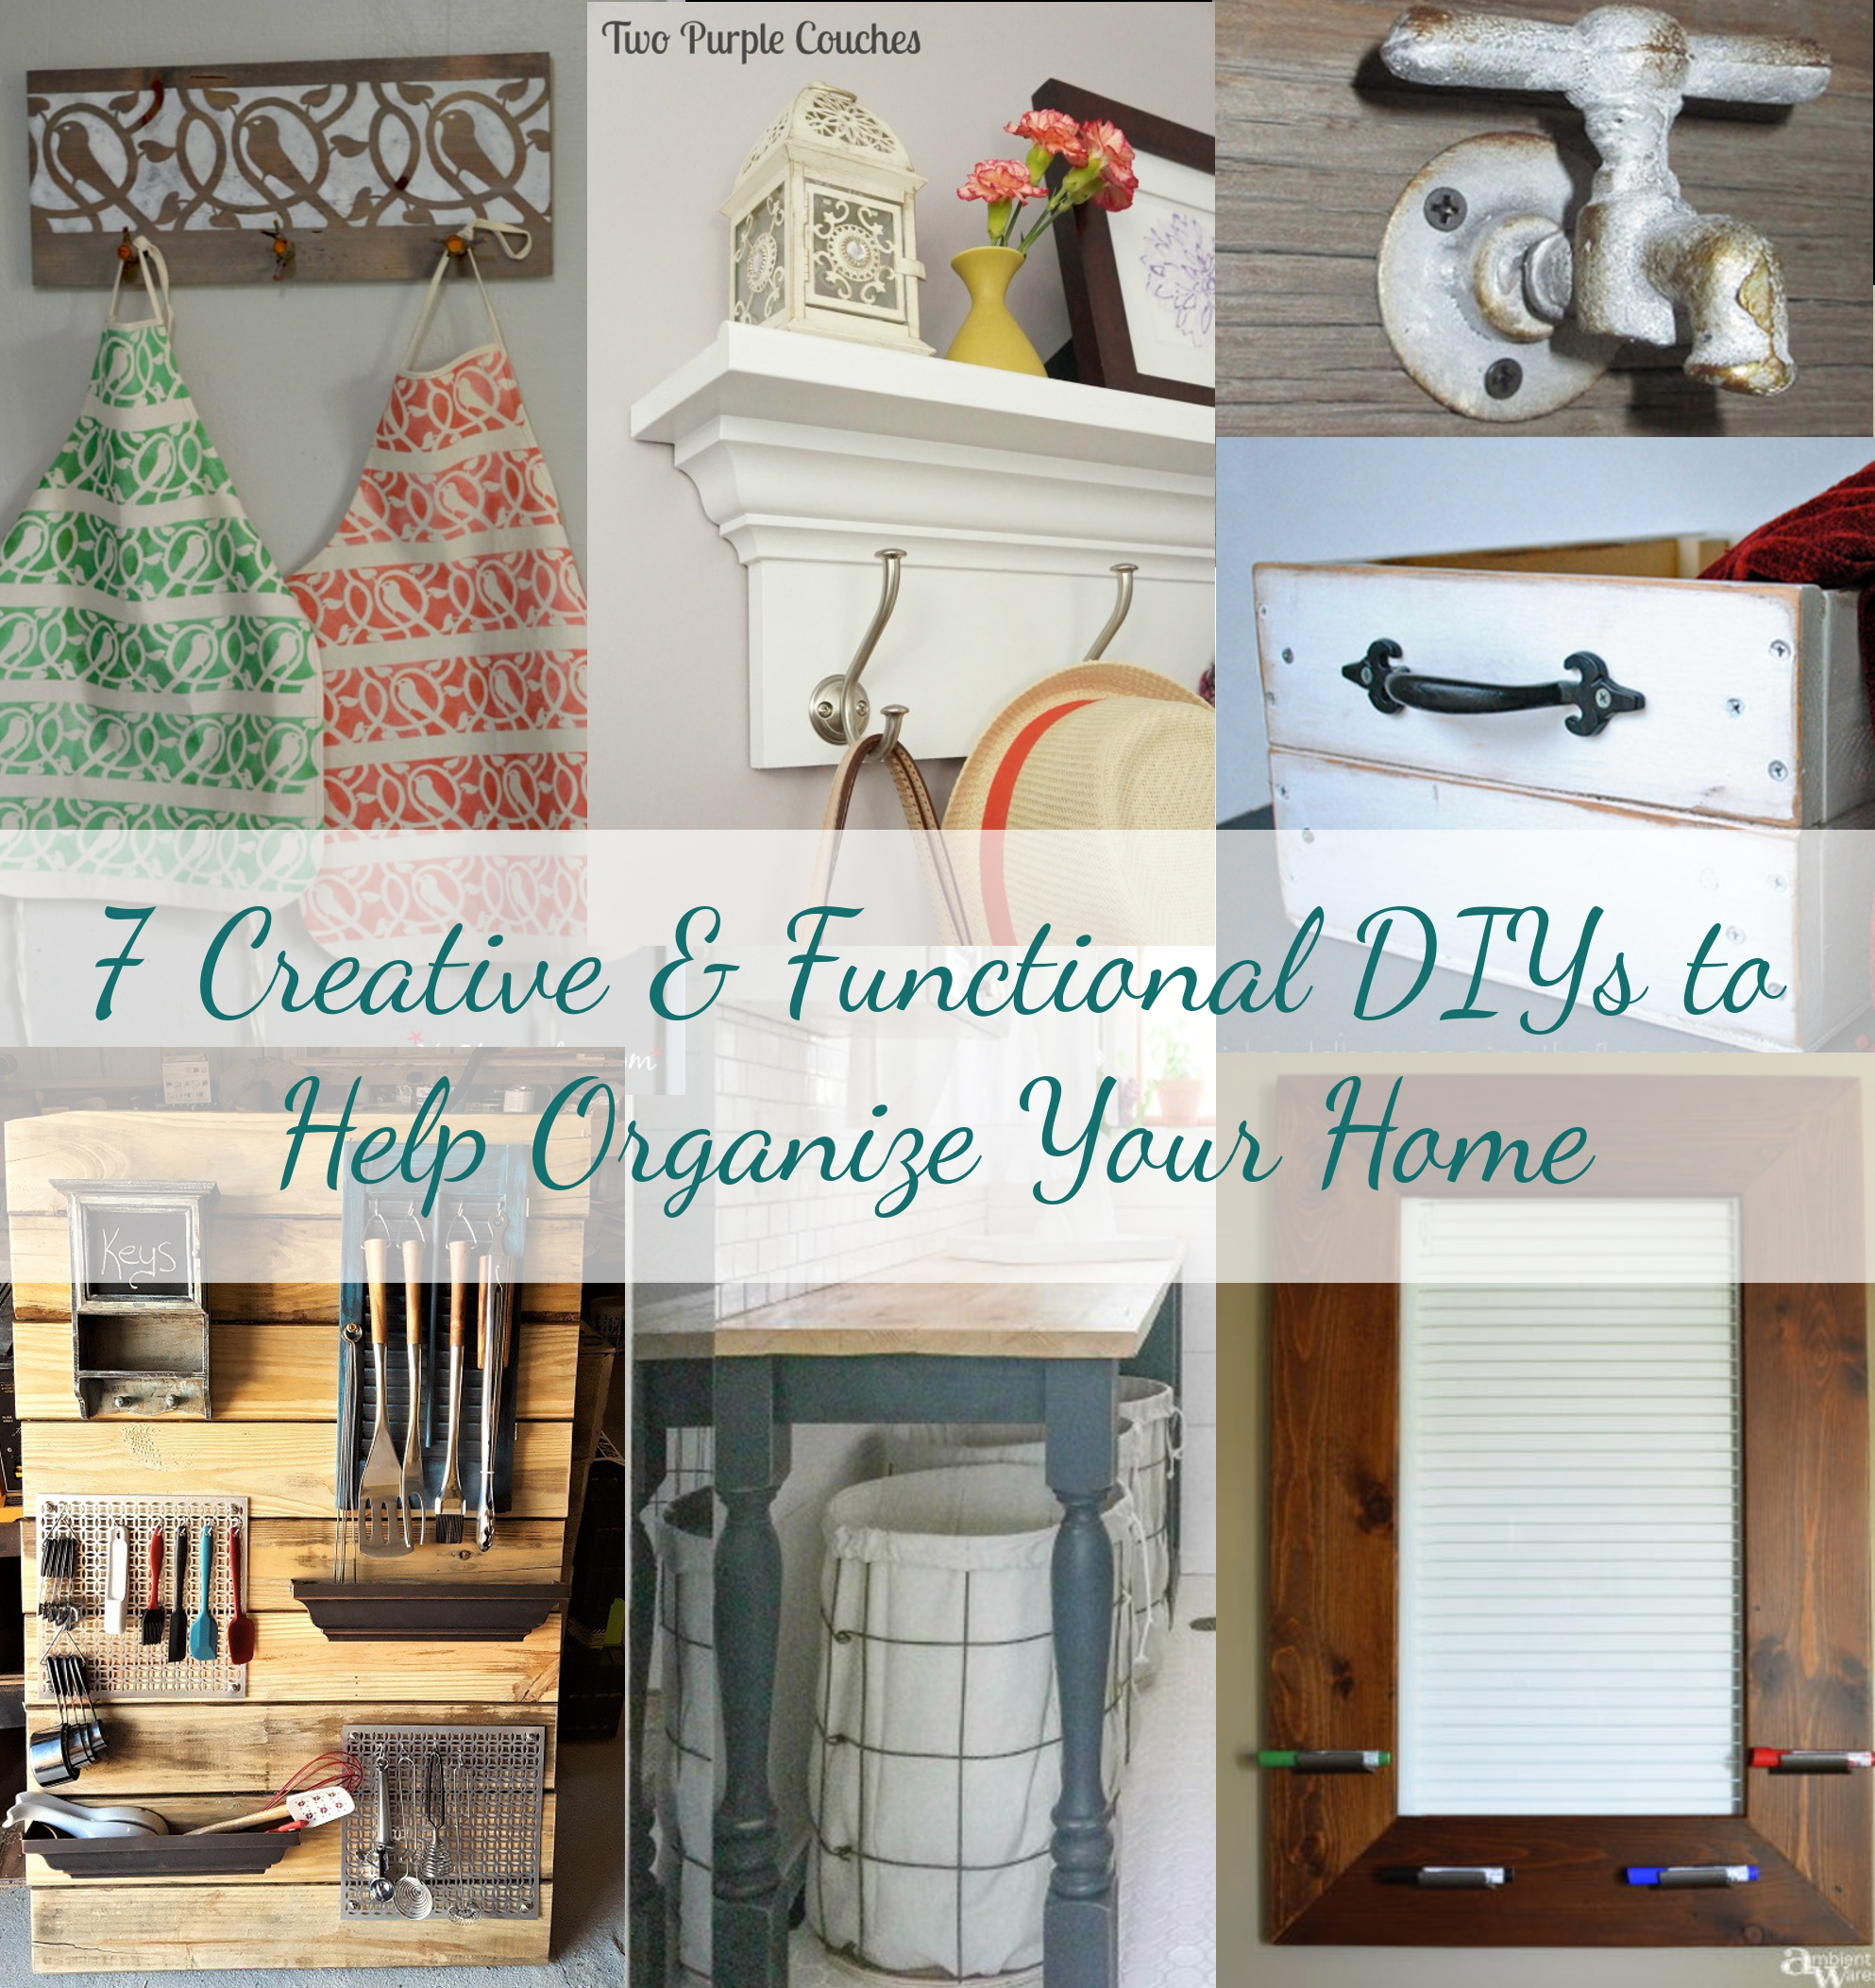 7 Creative & Functional DIYs to Help Organize Your Home